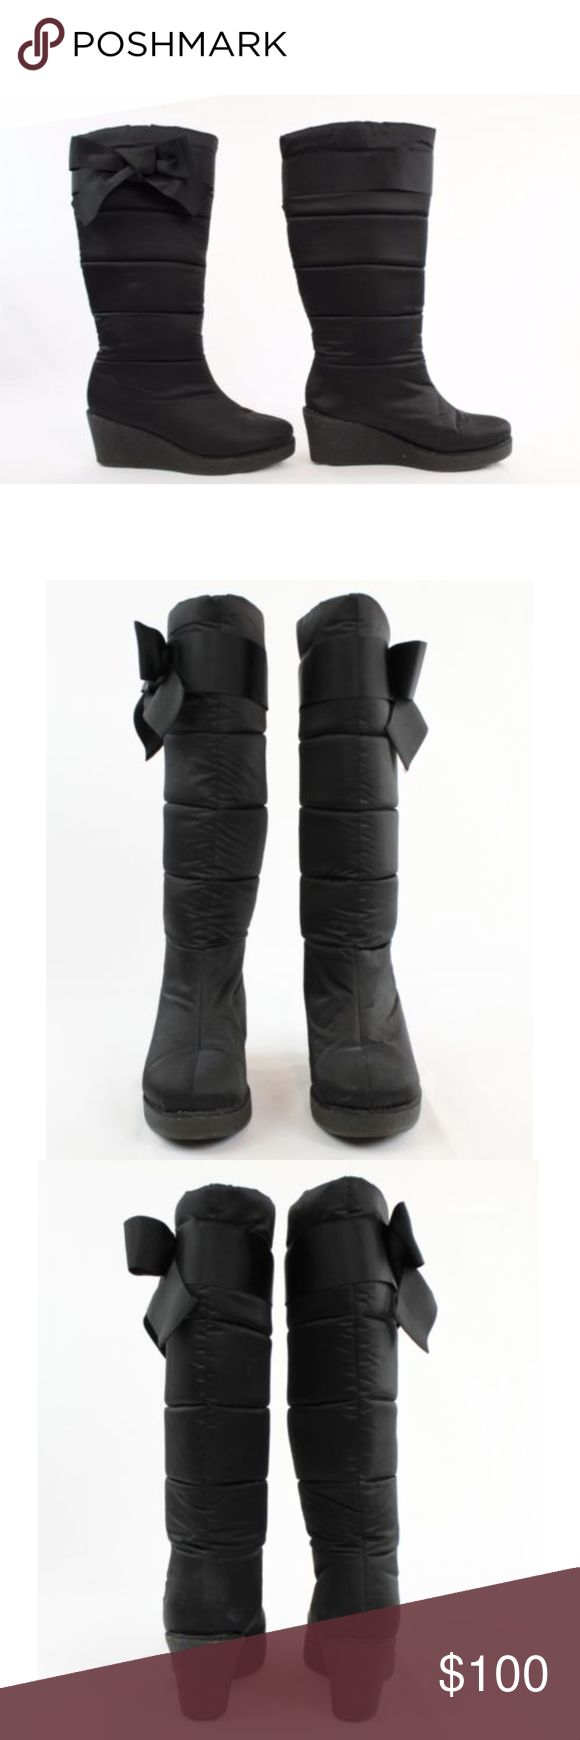 """Kate Spade Cagney Black Wedge Quilted Snow Boot Kate Spade Cagney Size 9.5 Black Wedge Snow Boots Winter Women's Nylon Quilted  Type: Boots  Style: Snow  Brand: Kate Spade New York  Size: 9.5  Color: Black  Measurements: 2 3/4"""" Heel  Condition: Excellent pre-owned...no visible flaws  Country of Origin: China kate spade Shoes Winter & Rain Boots"""